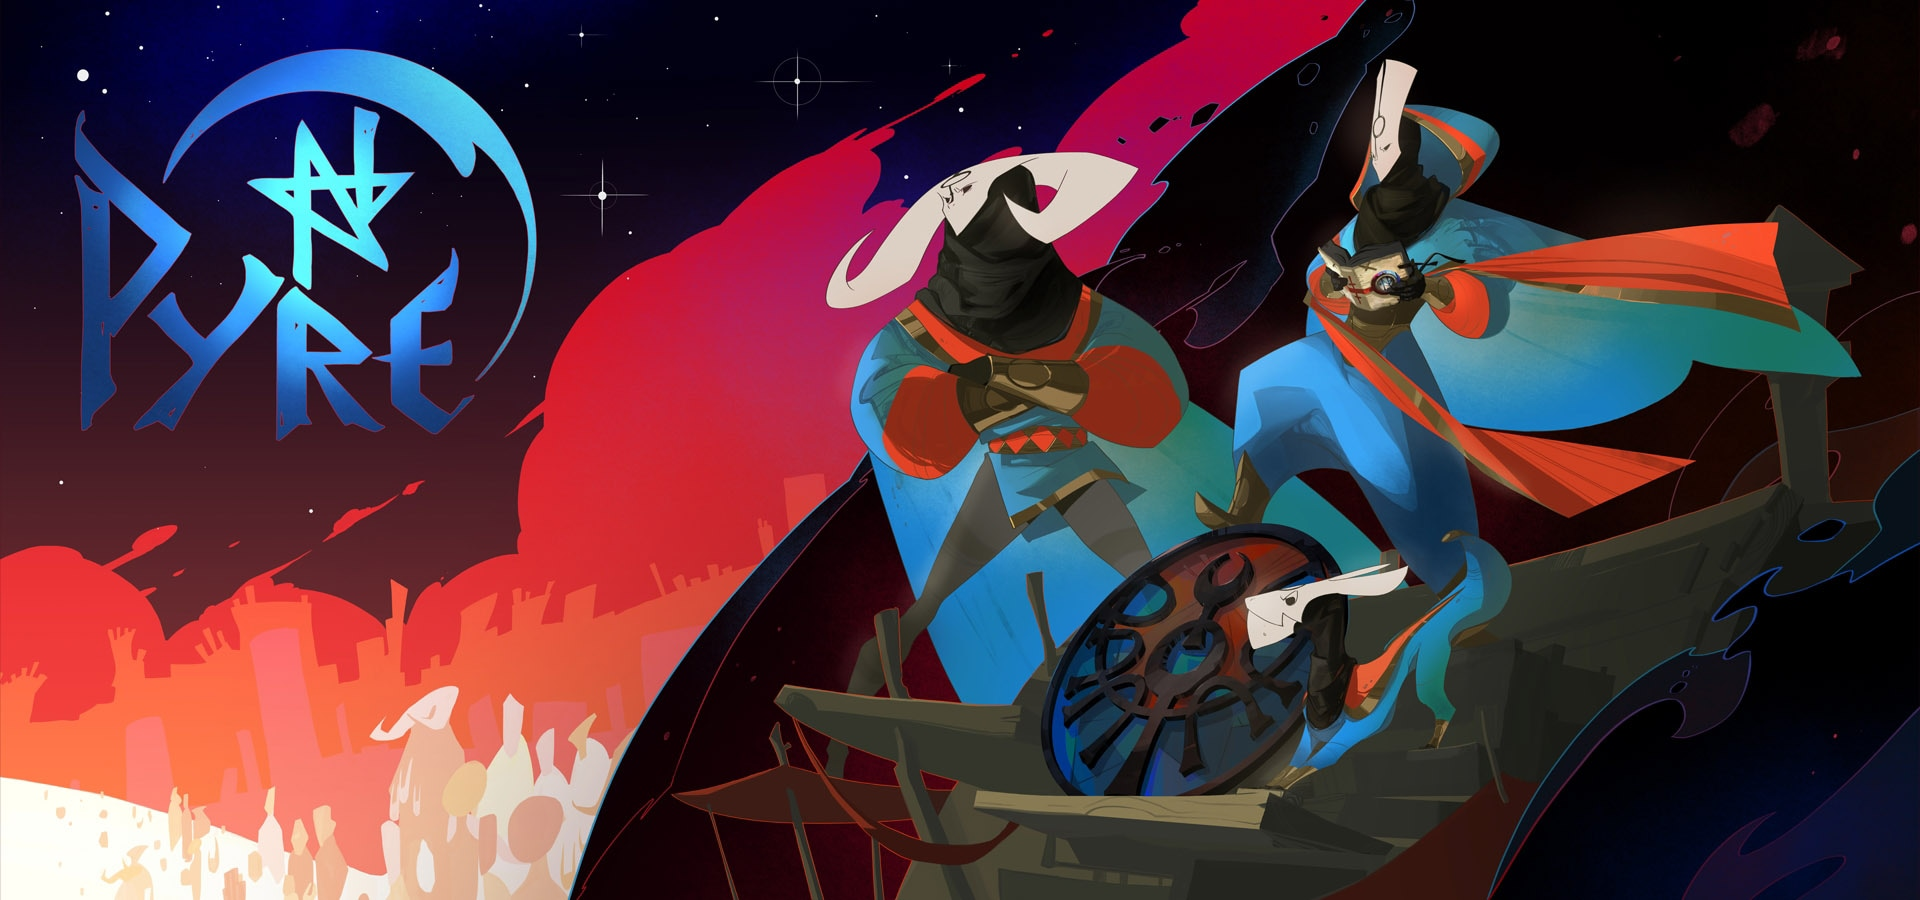 Pyre Developer on Design Choices, Local Multiplayer, and the Lack of a Game Over Screen